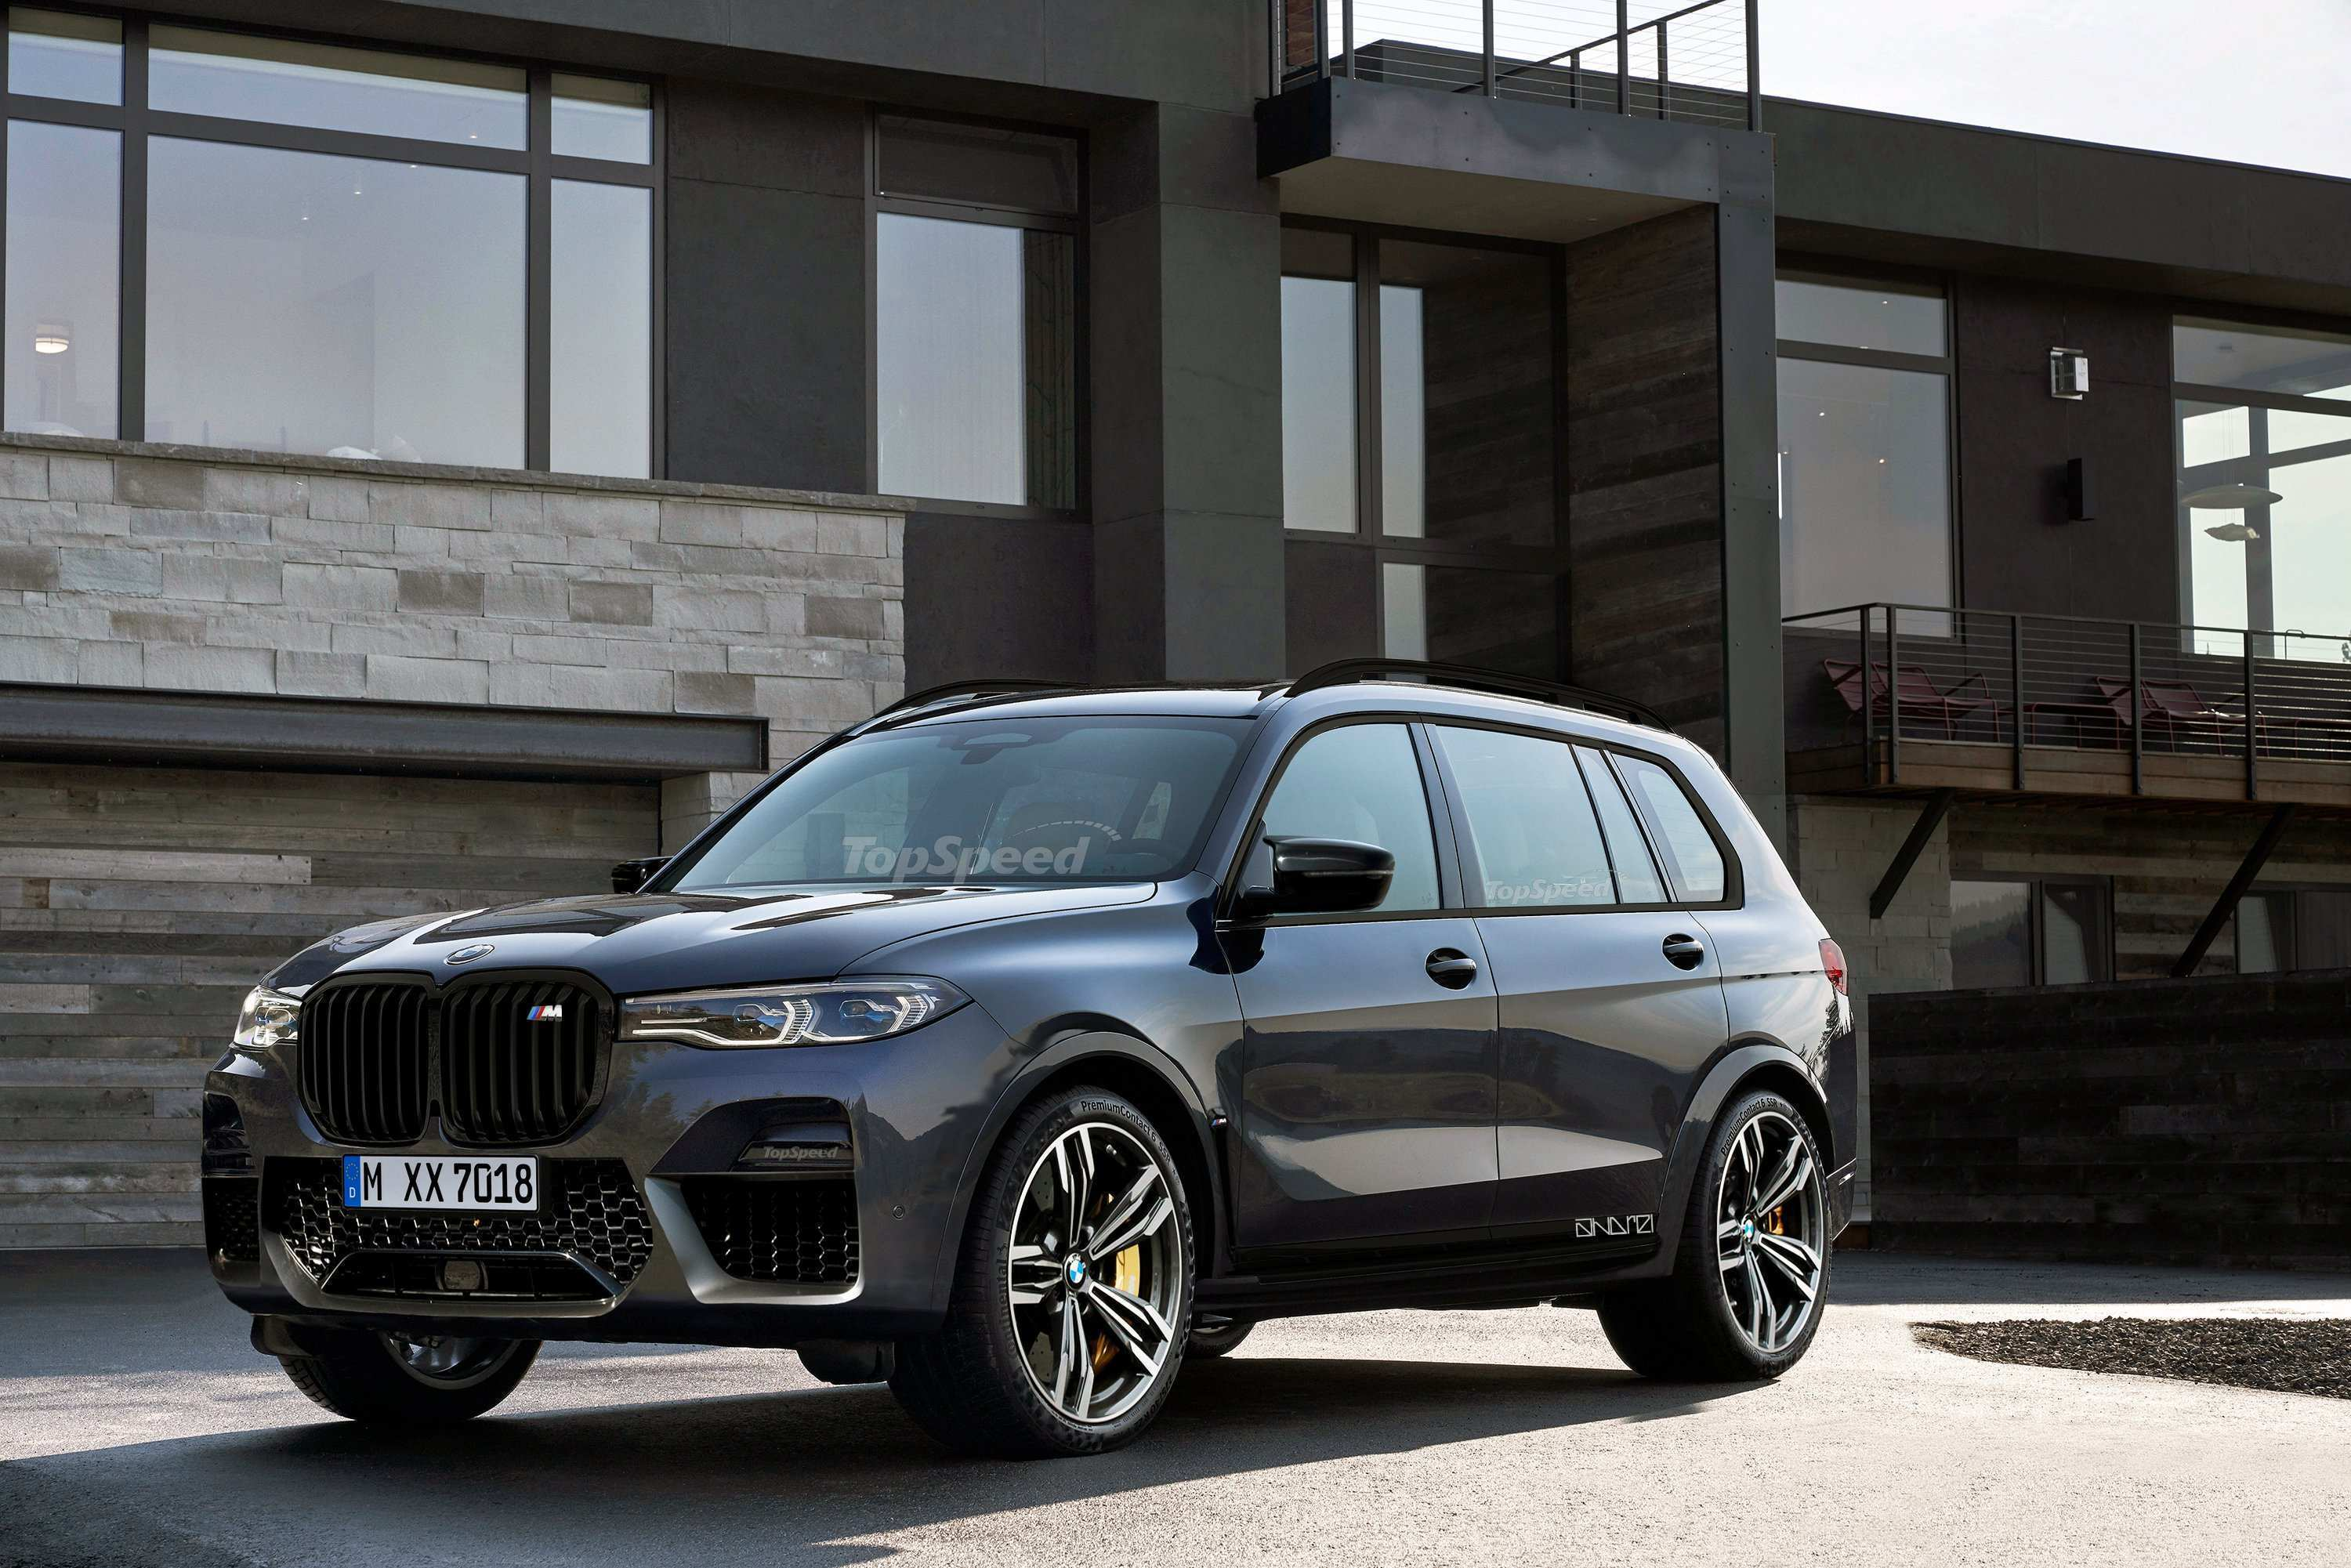 89 New 2020 BMW X7 Prices for 2020 BMW X7